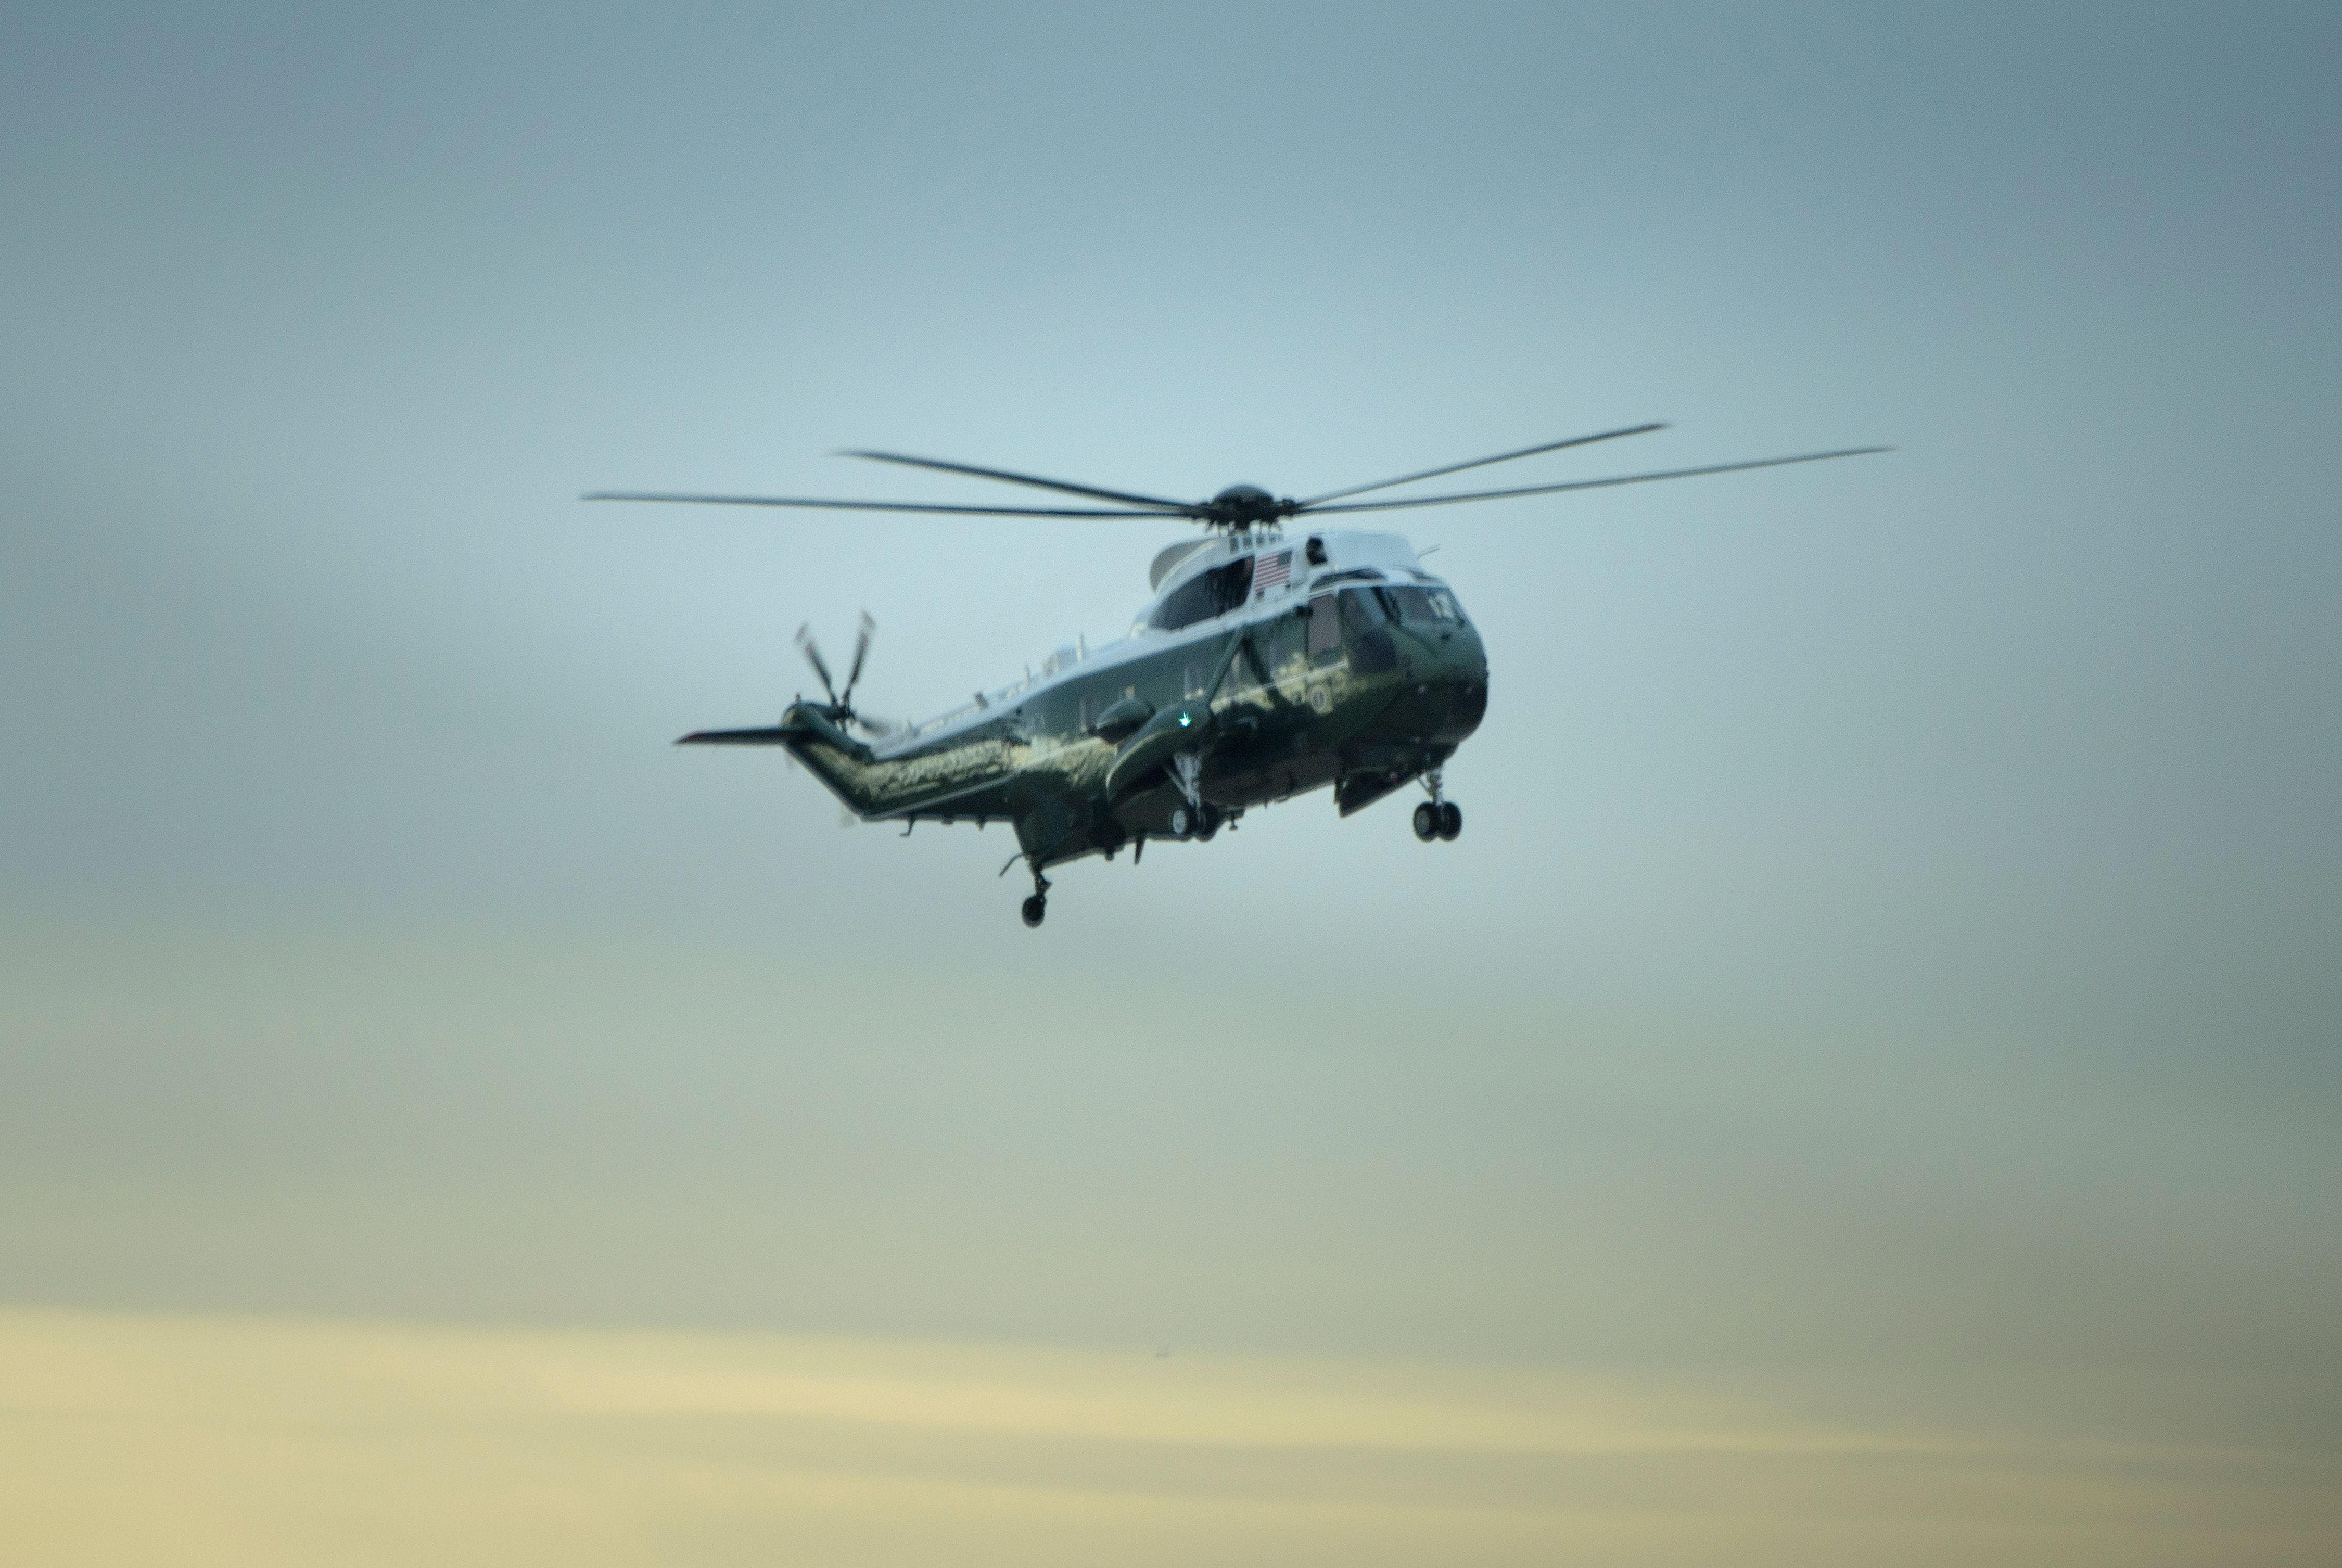 Marine One with President Trump on board, lands at Dover Air Force Base for the dignified transfer of Navy Seal Chief Petty Officer William  Ryan  Owens in Dover, Delaware on Feb. 1, 2017.